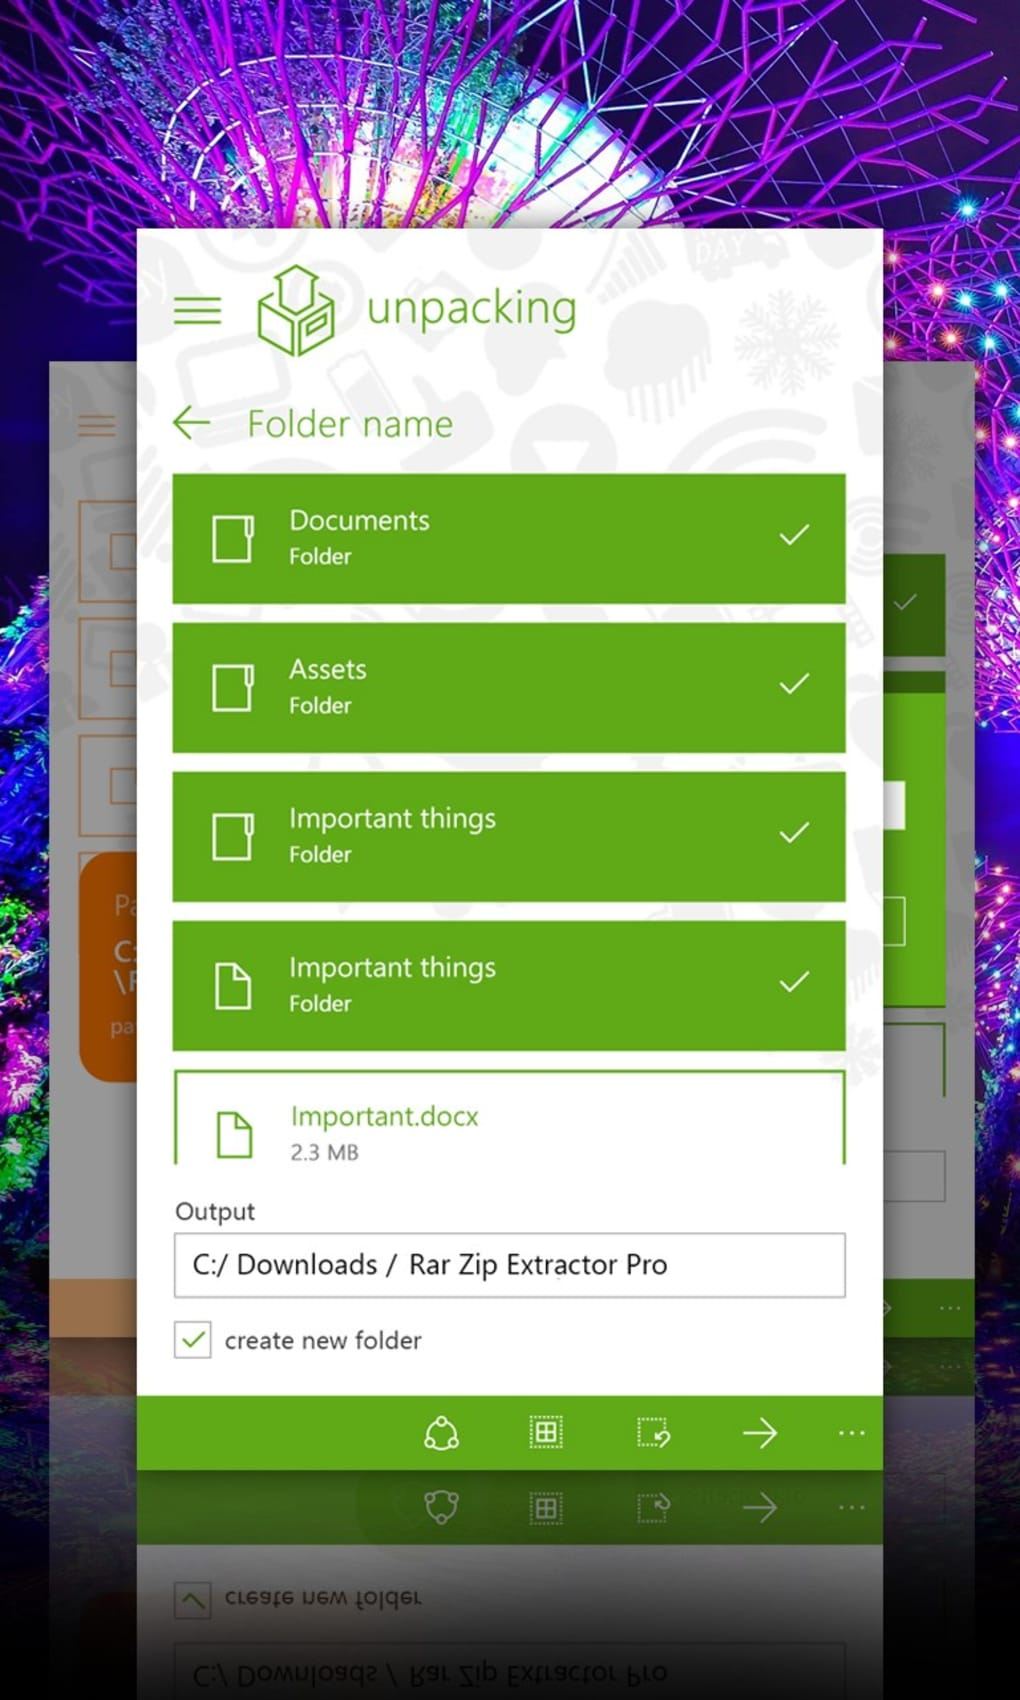 Rar Zip Extractor Pro - Download